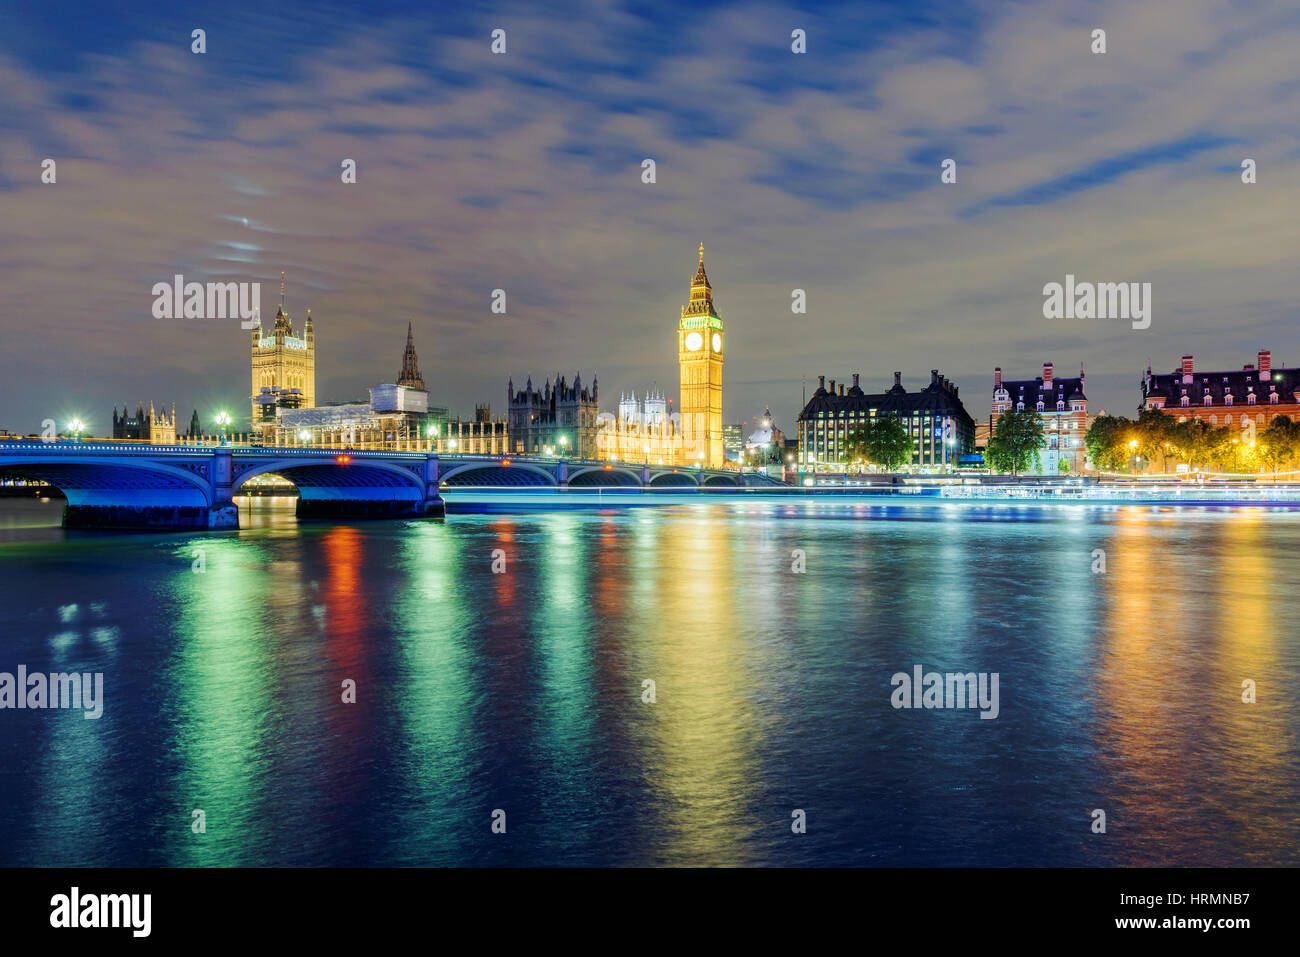 View of Big Ben and River Thames at night time - Stock Image